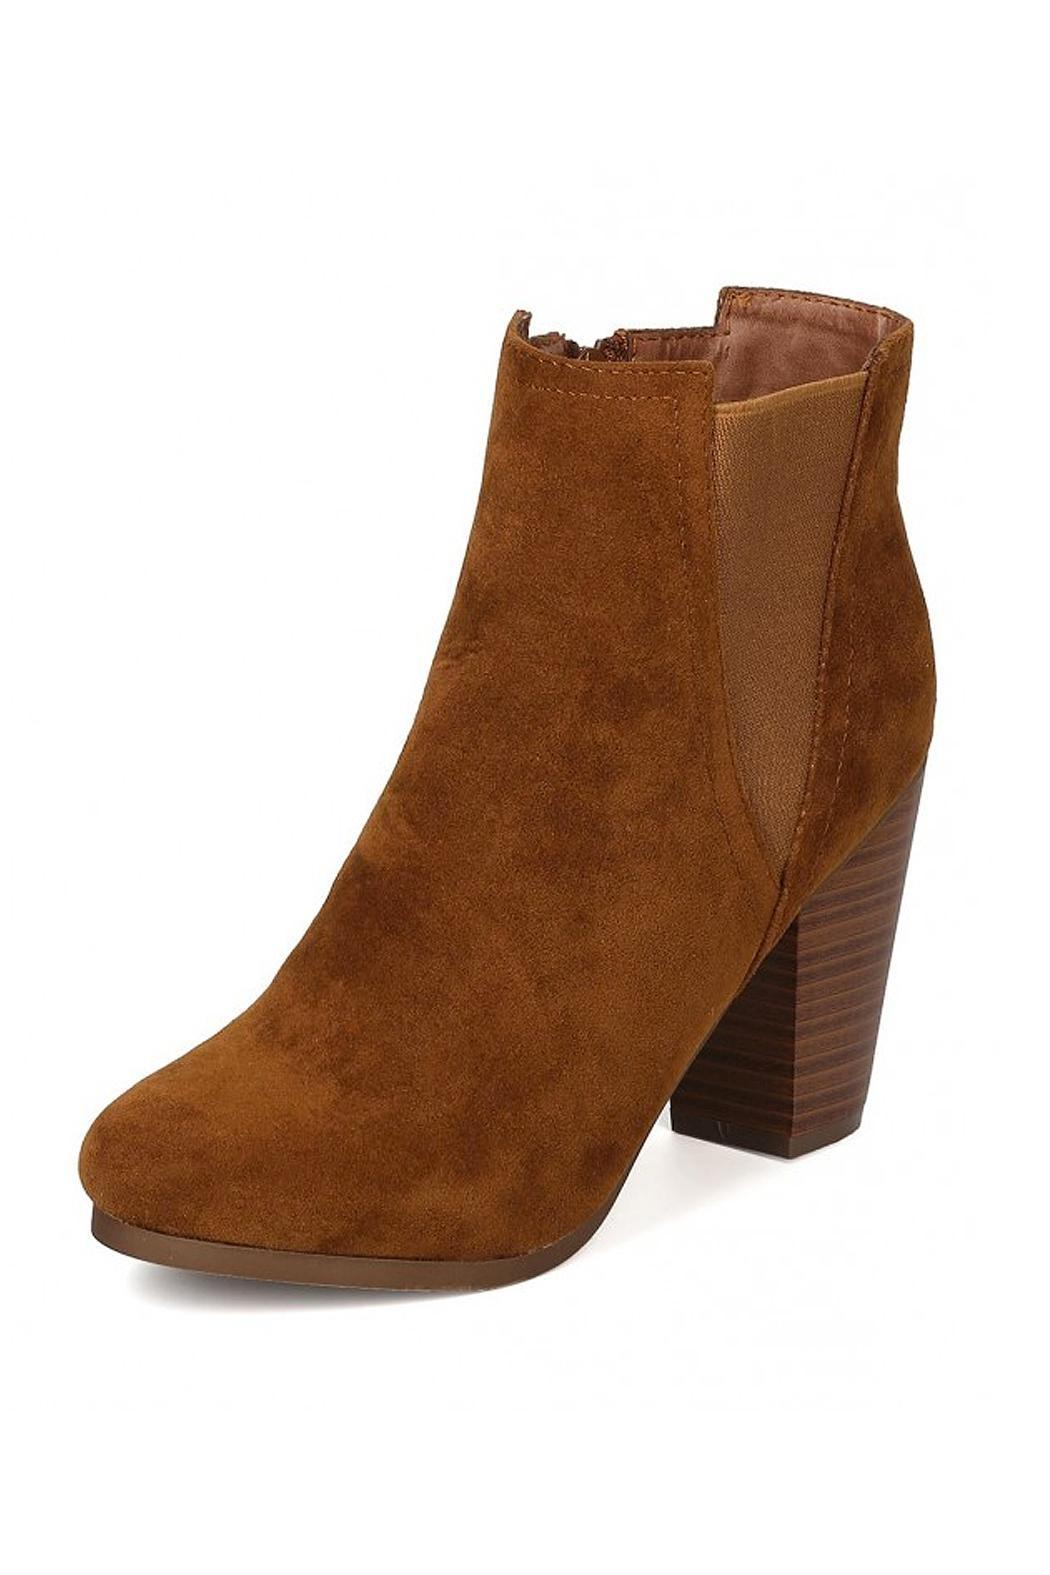 Breckelle's Gail Bootie - Front Cropped Image